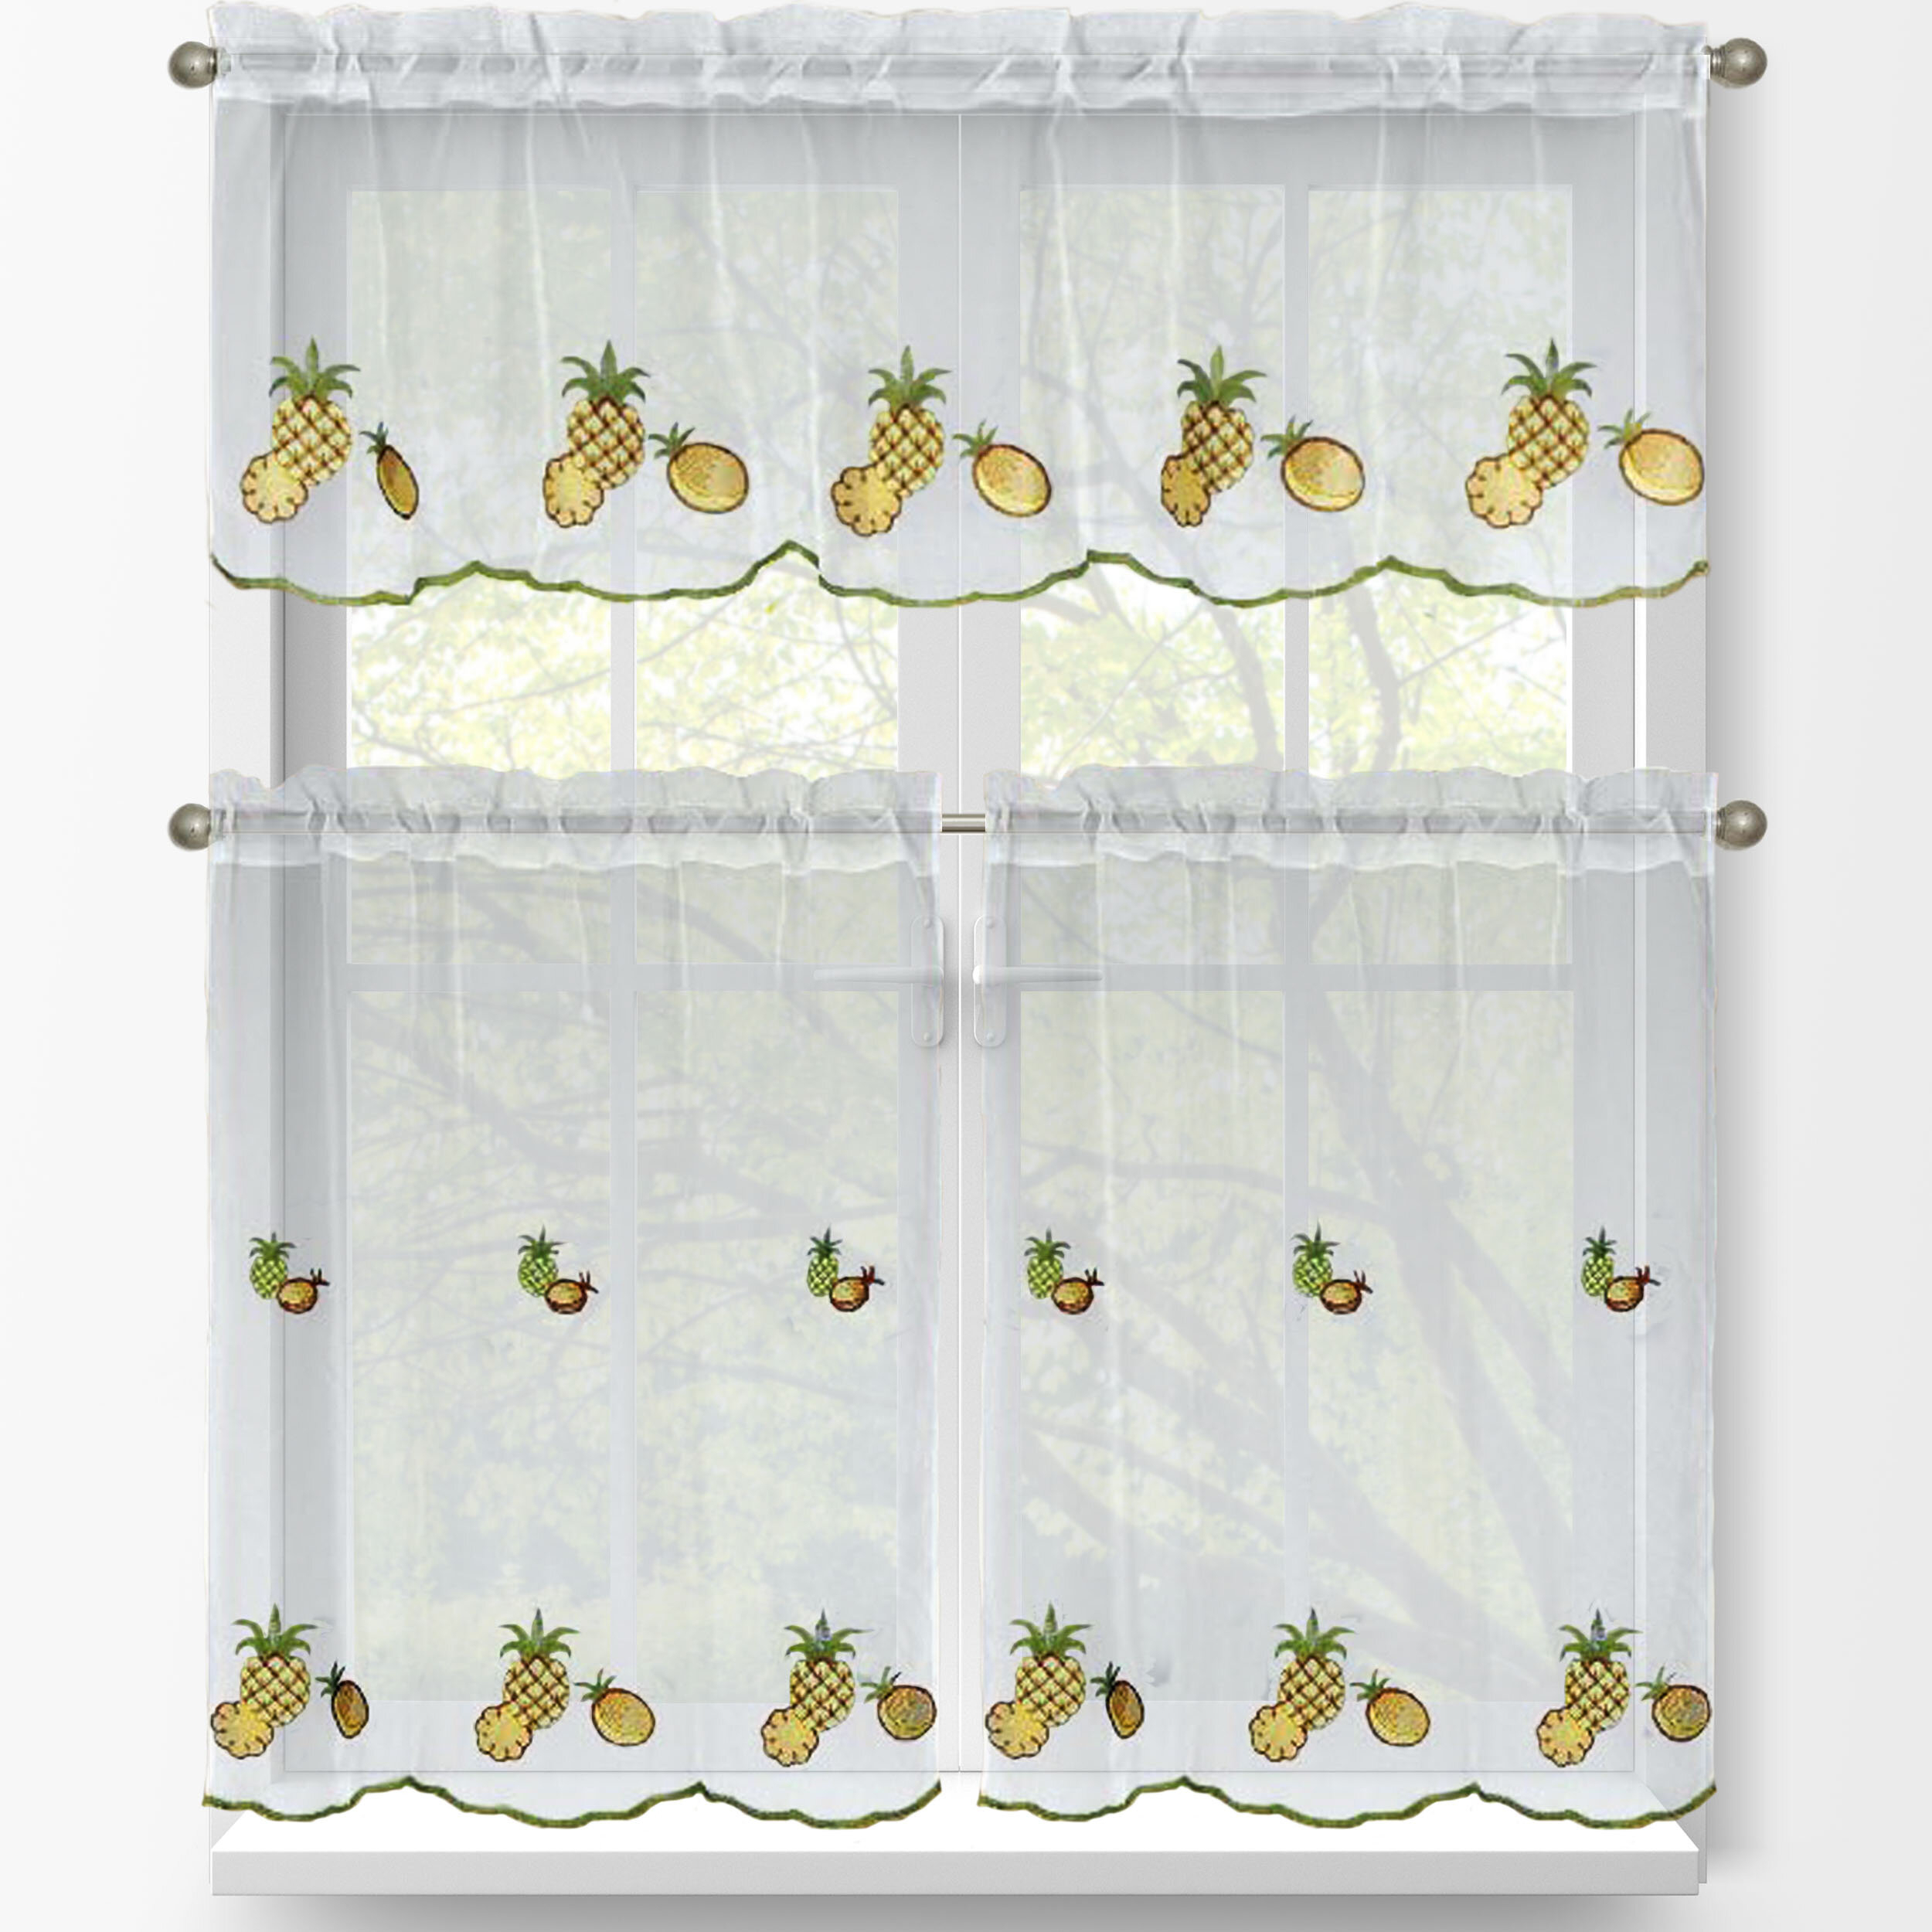 Pineapple 3 Piece Embroidered Kitchen Tier And Valance Set Regarding Window Curtain Tier And Valance Sets (View 10 of 20)